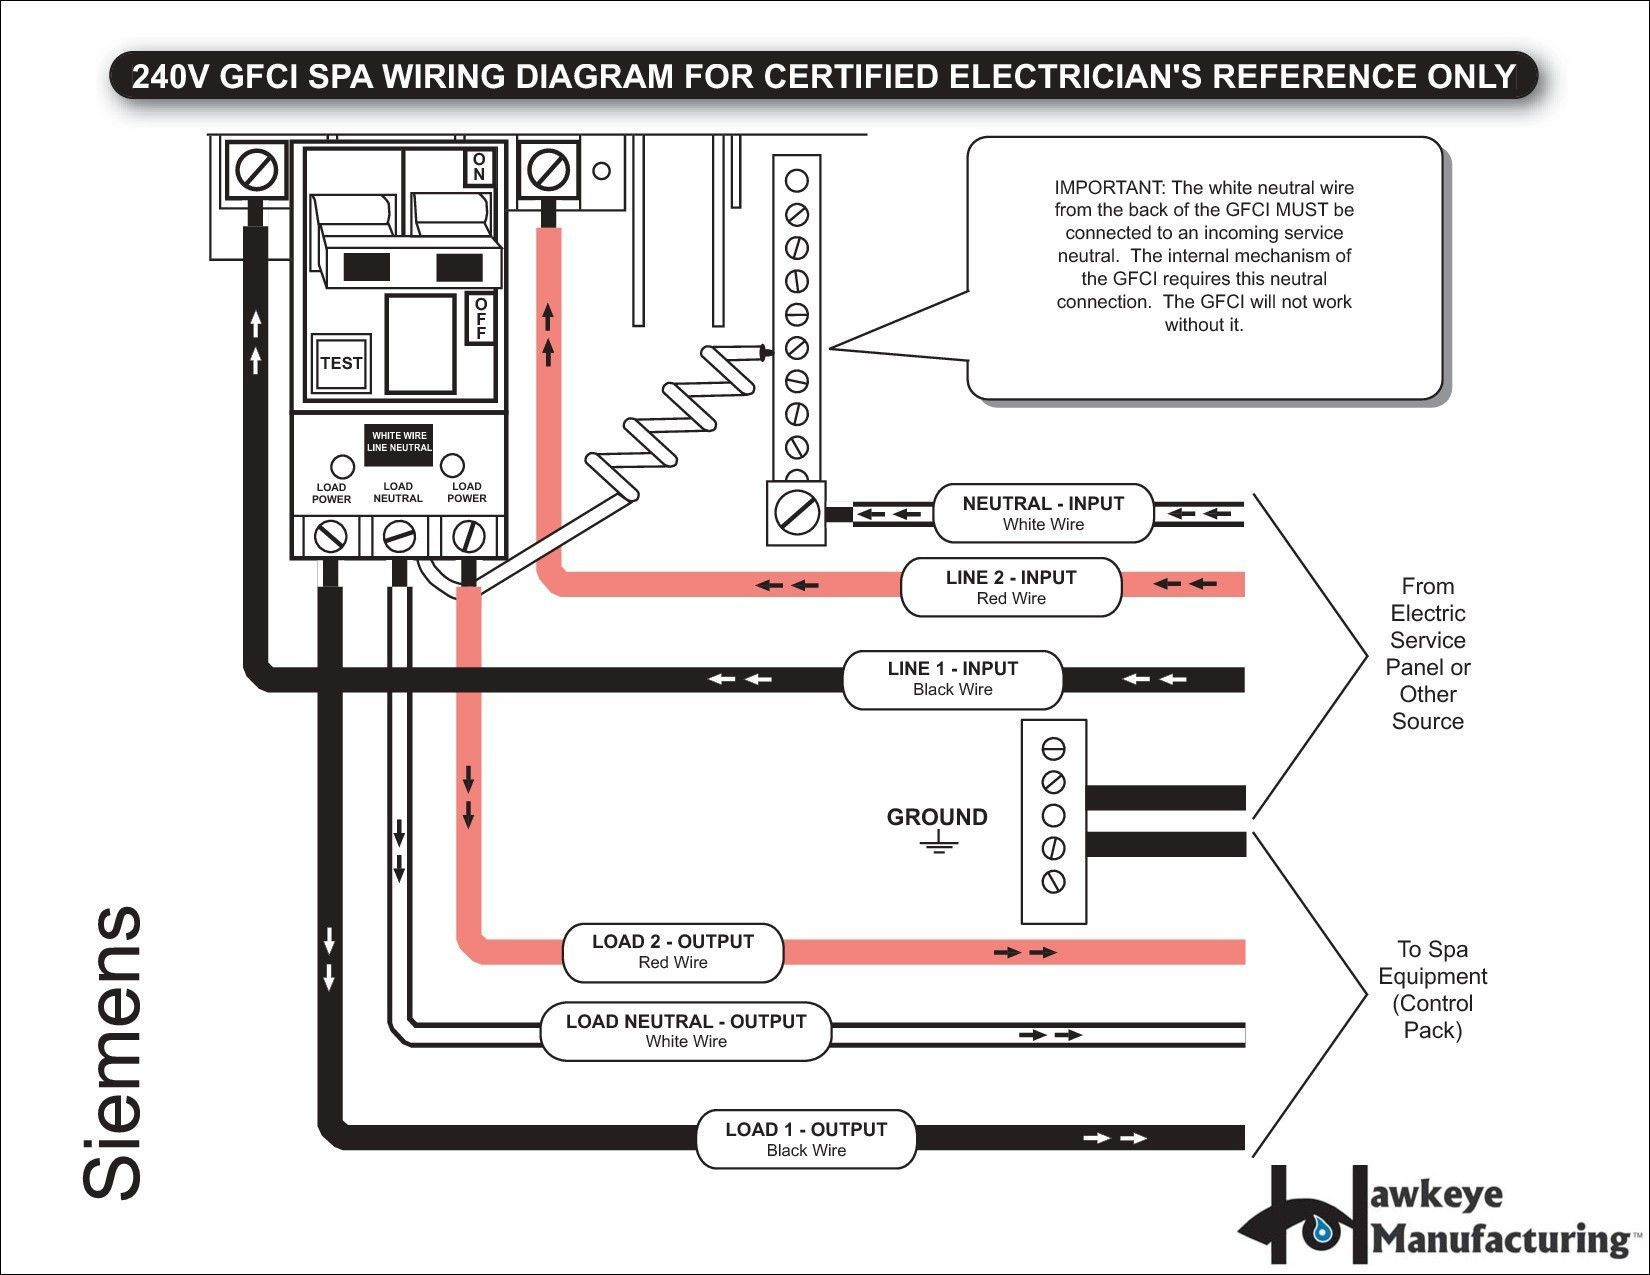 Unique Cooper Gfci Wiring Diagram Diagram Diagramsample Diagramtemplate Wiringdiagram Diagramchart Worksheet Worksheettem Diagram Thermostat Wiring Gfci